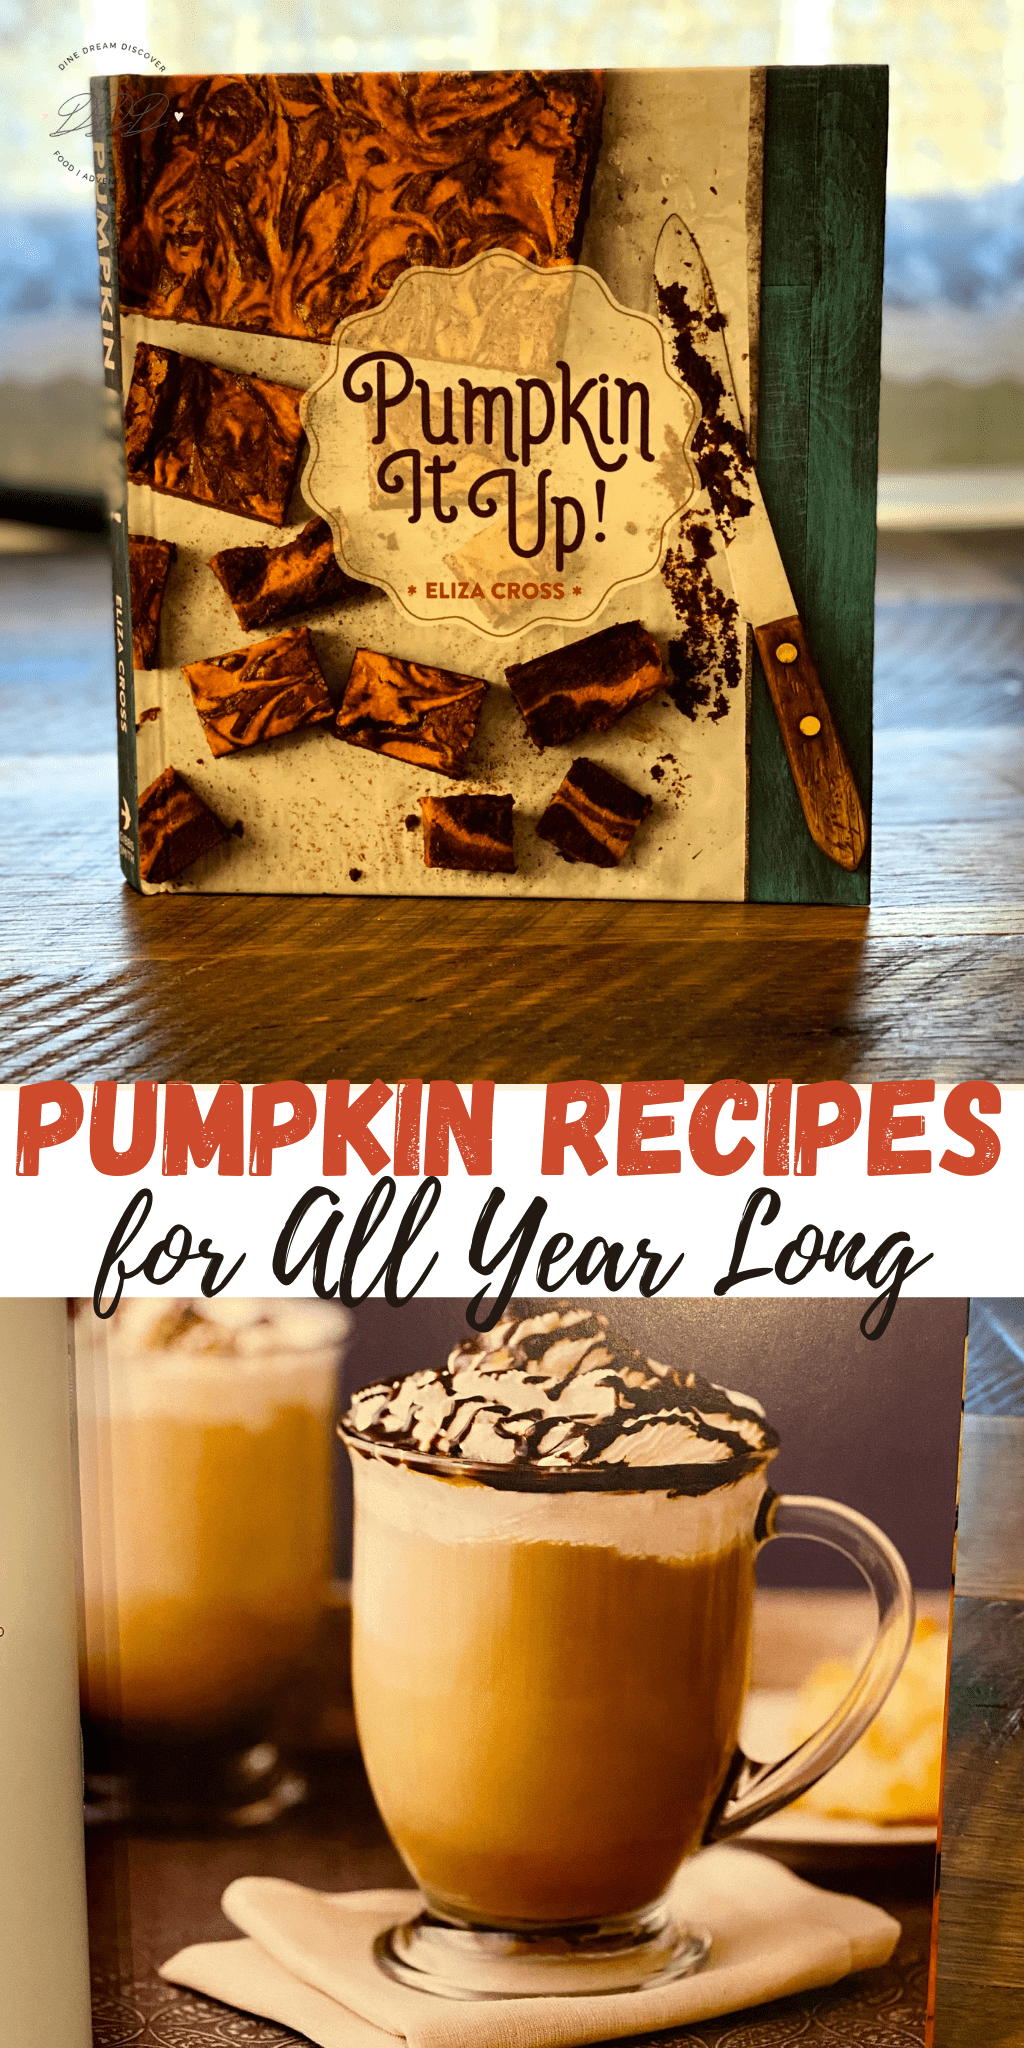 Pumpkin Recipes For All Year Long